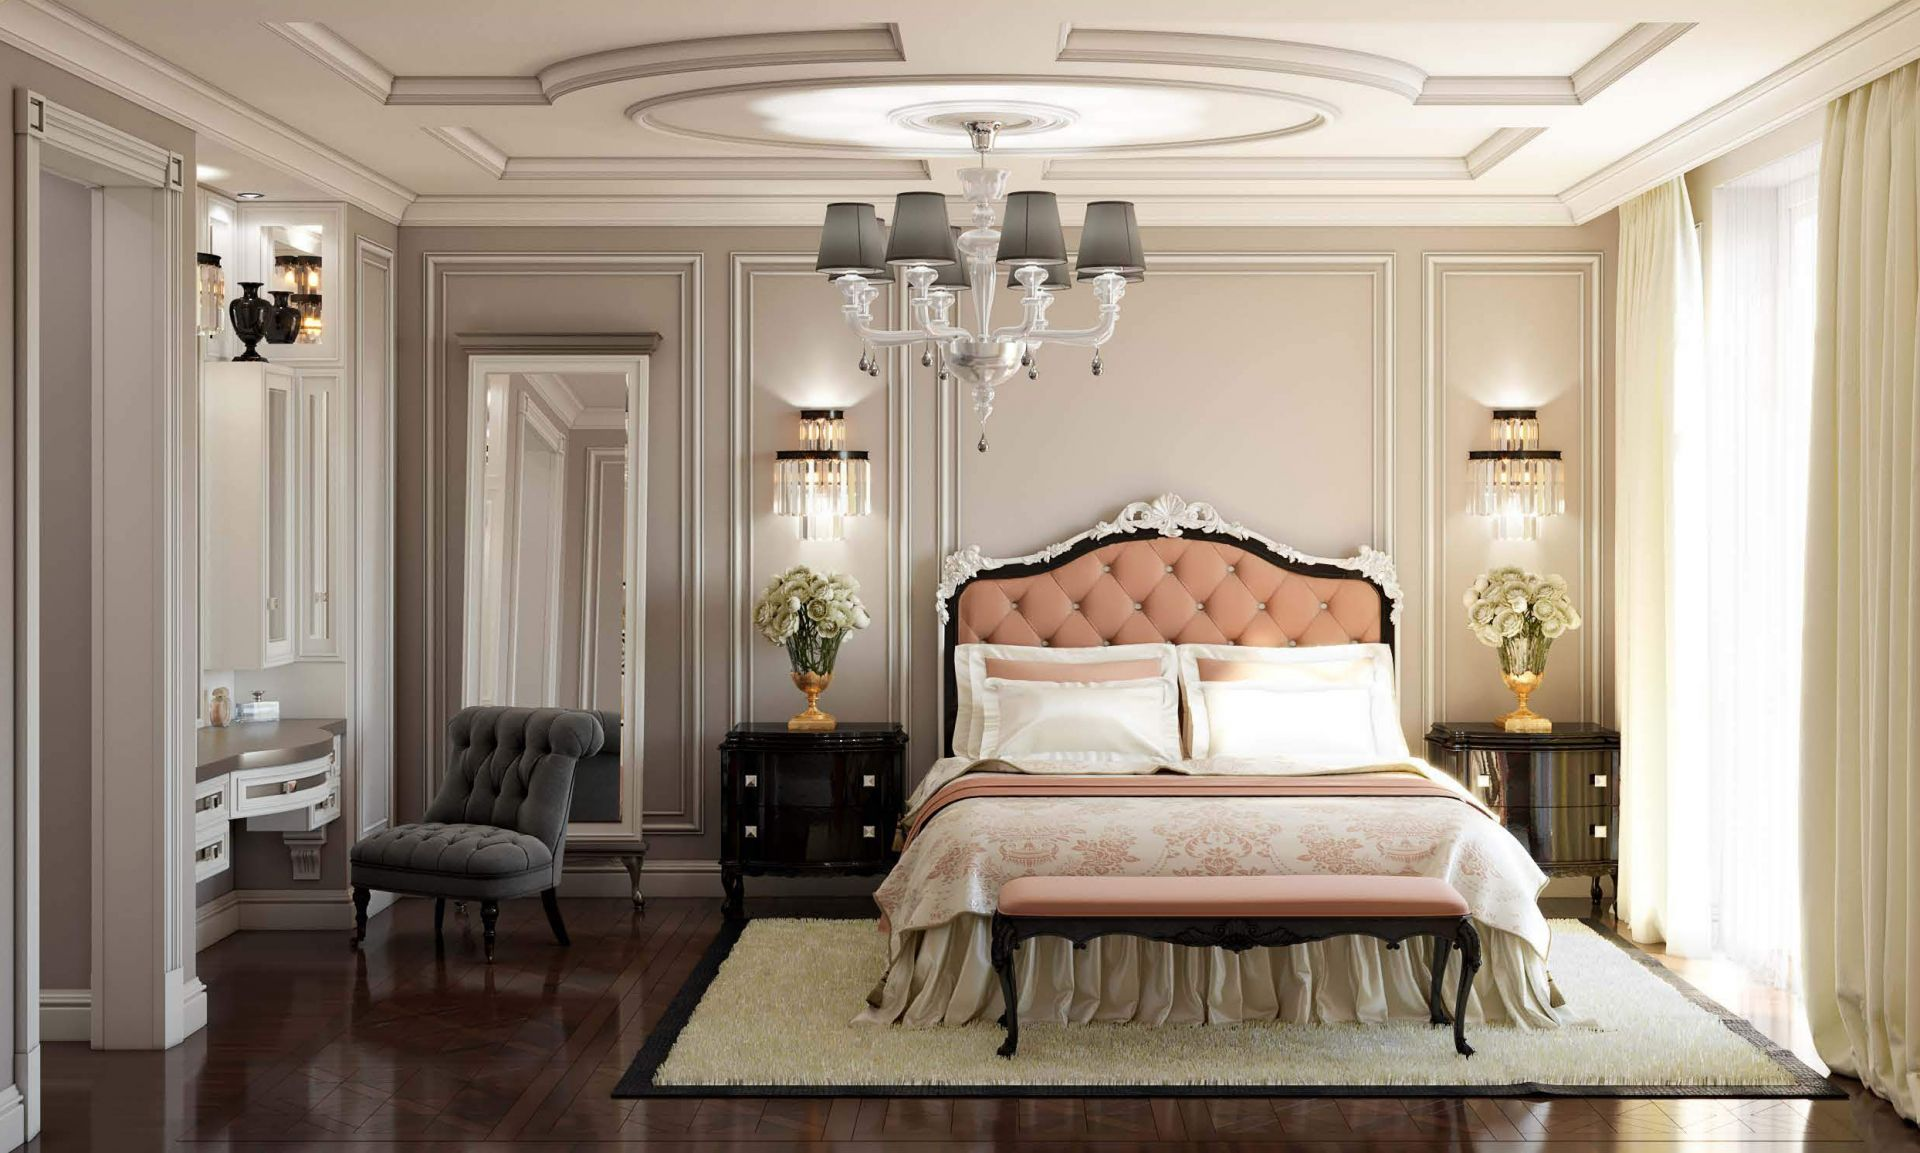 Design, Neoclassical style bedroom design